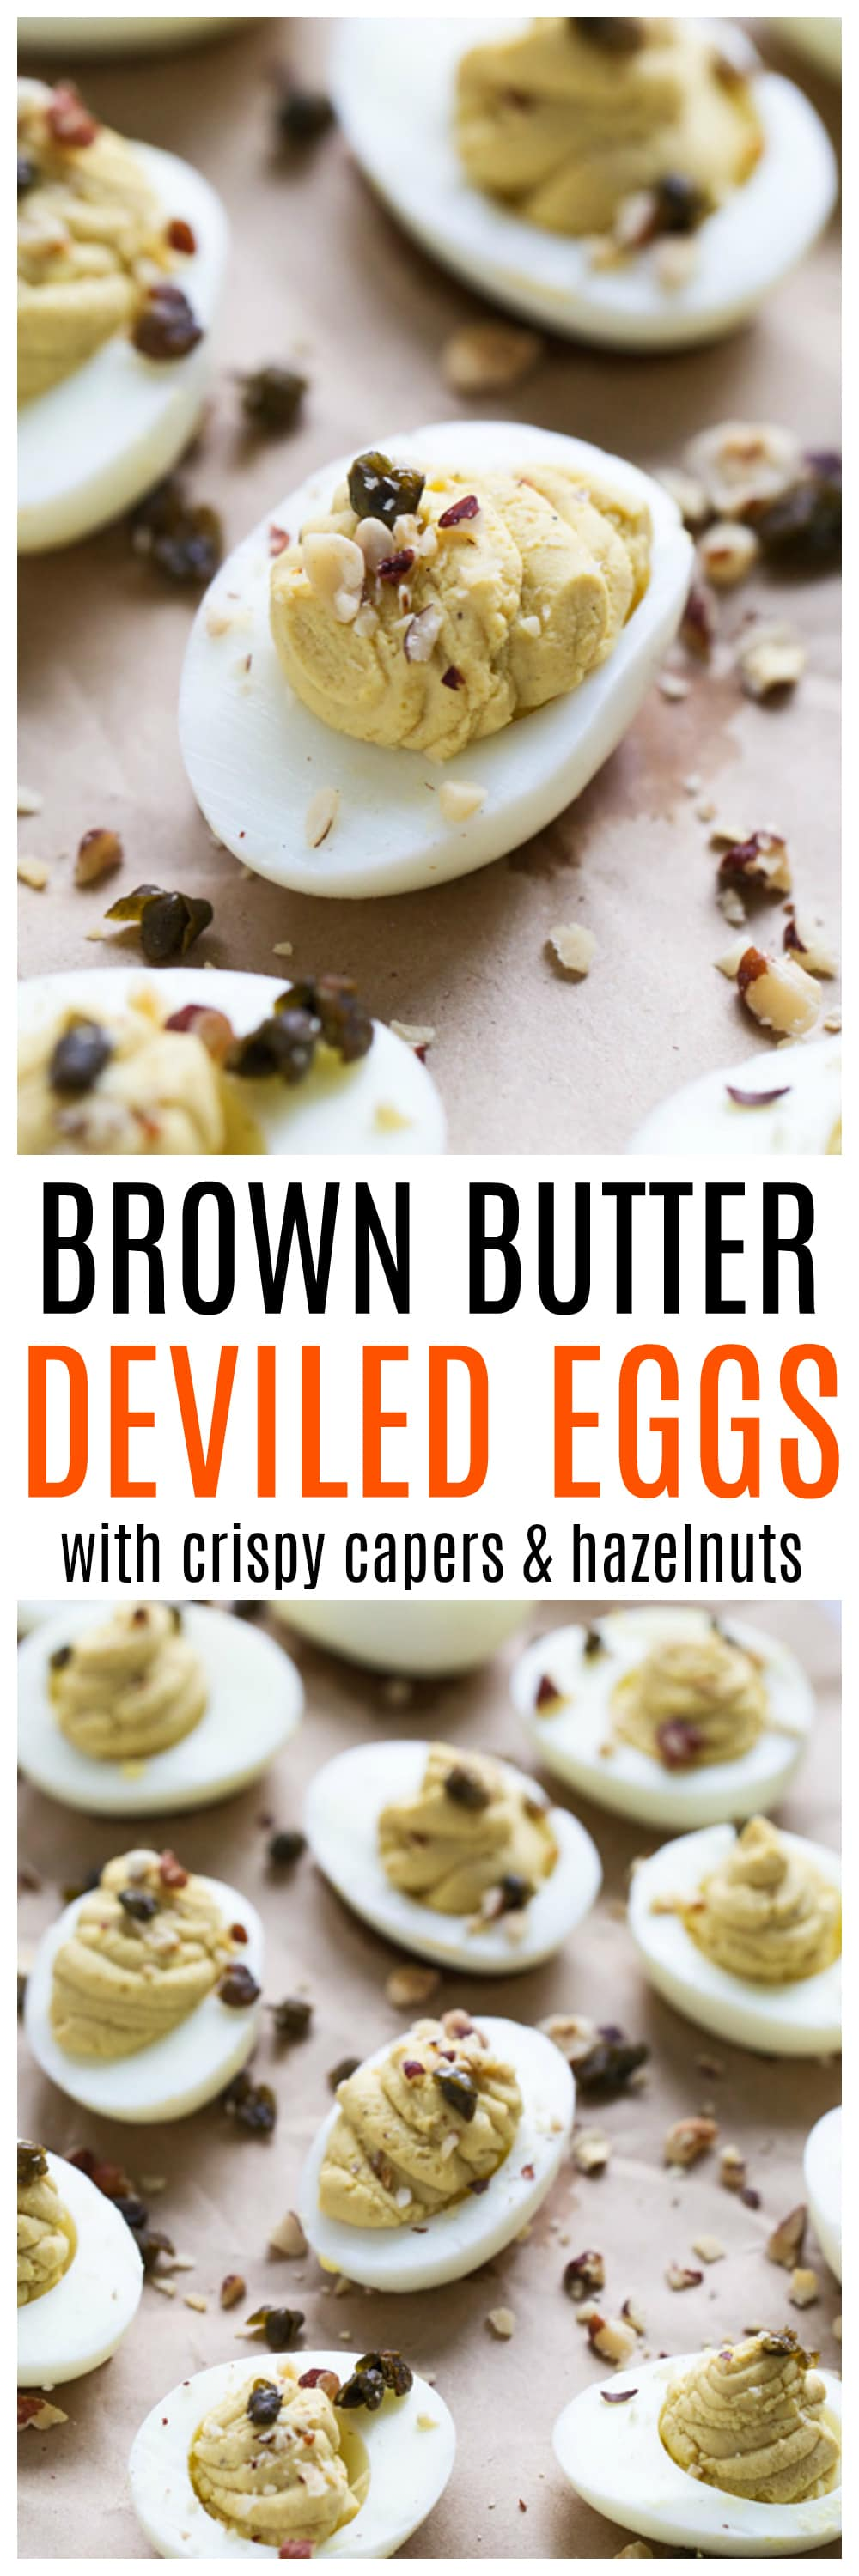 Brown Butter Deviled Eggs with Crispy Capers and Hazelnuts